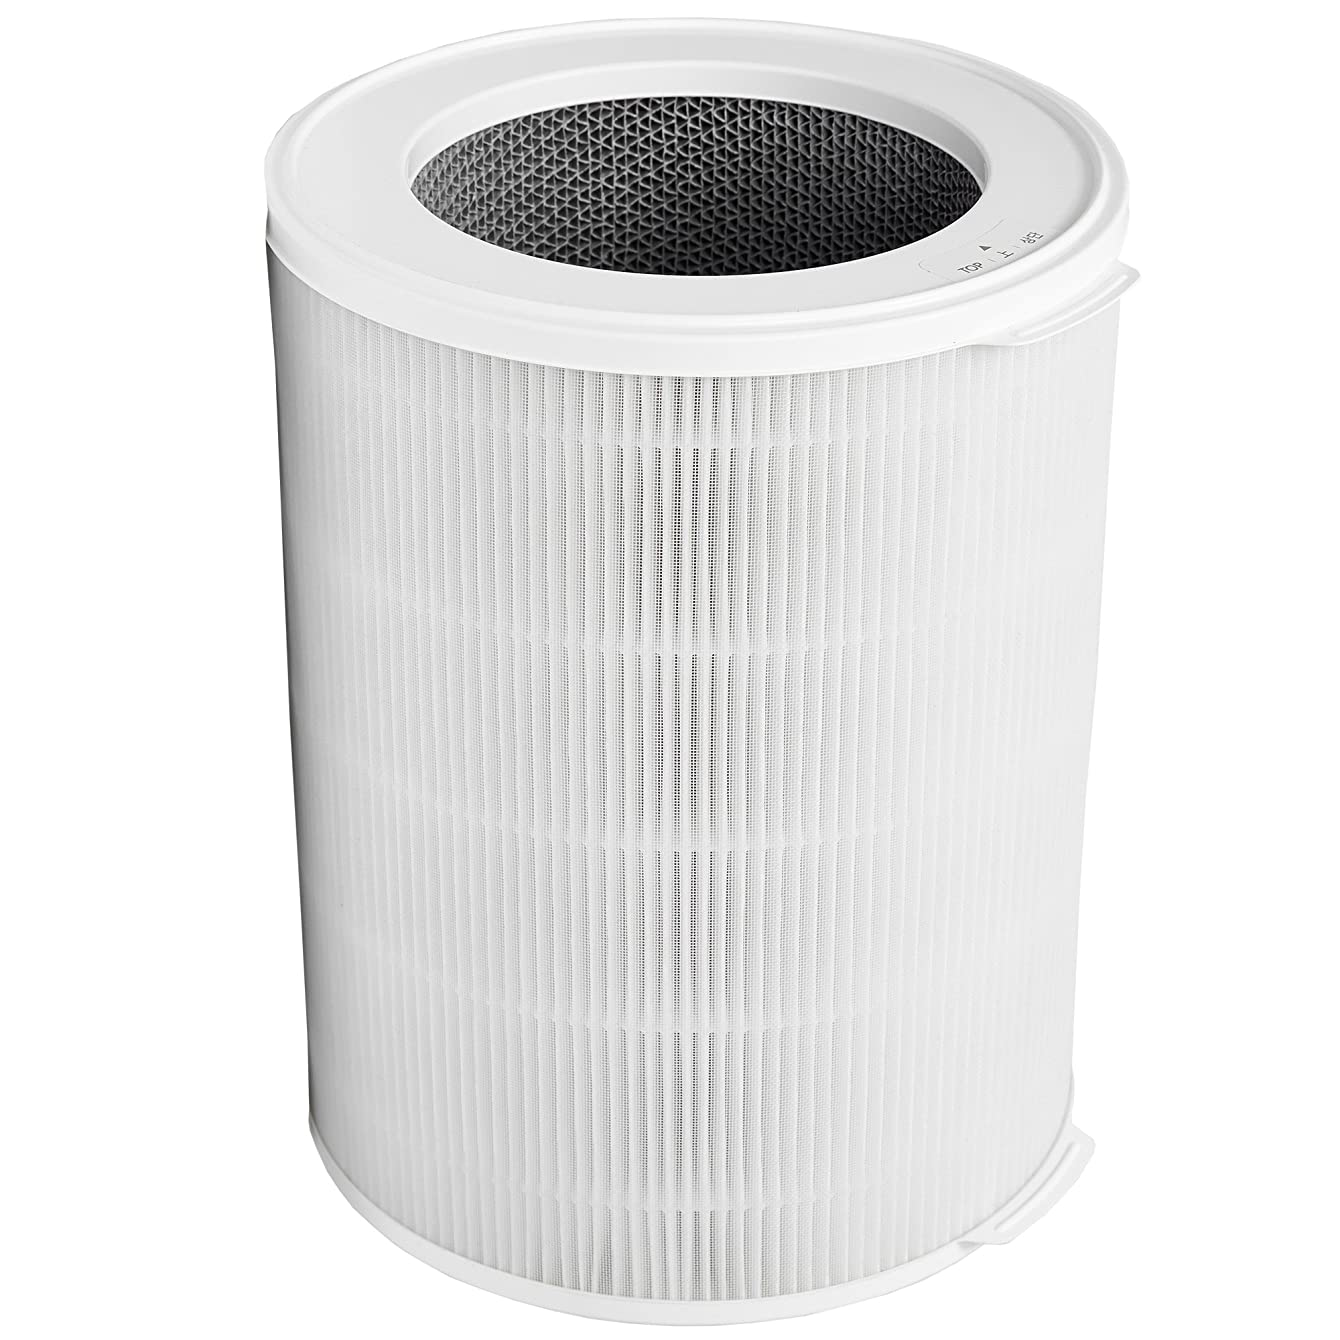 Winix Replacement Filter N for Air Purifiers NK100, NK105 QS, White